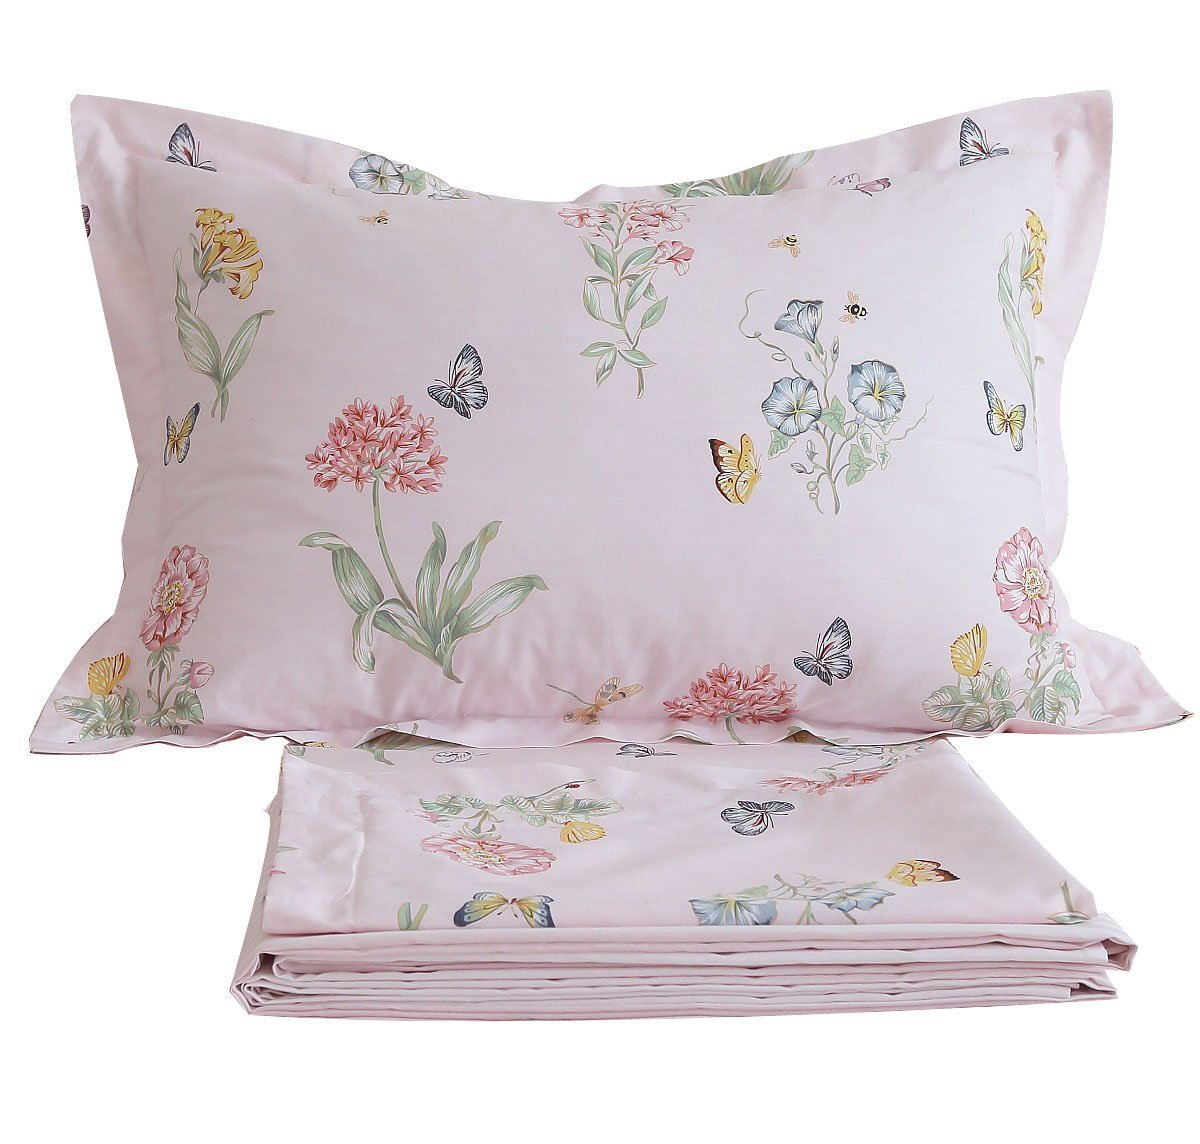 FADFAY Shabby Pink Floral Bed Sheet Set Twin XL Cotton Sheets Butterfly Print 4-Piece Twin Extra Long Size